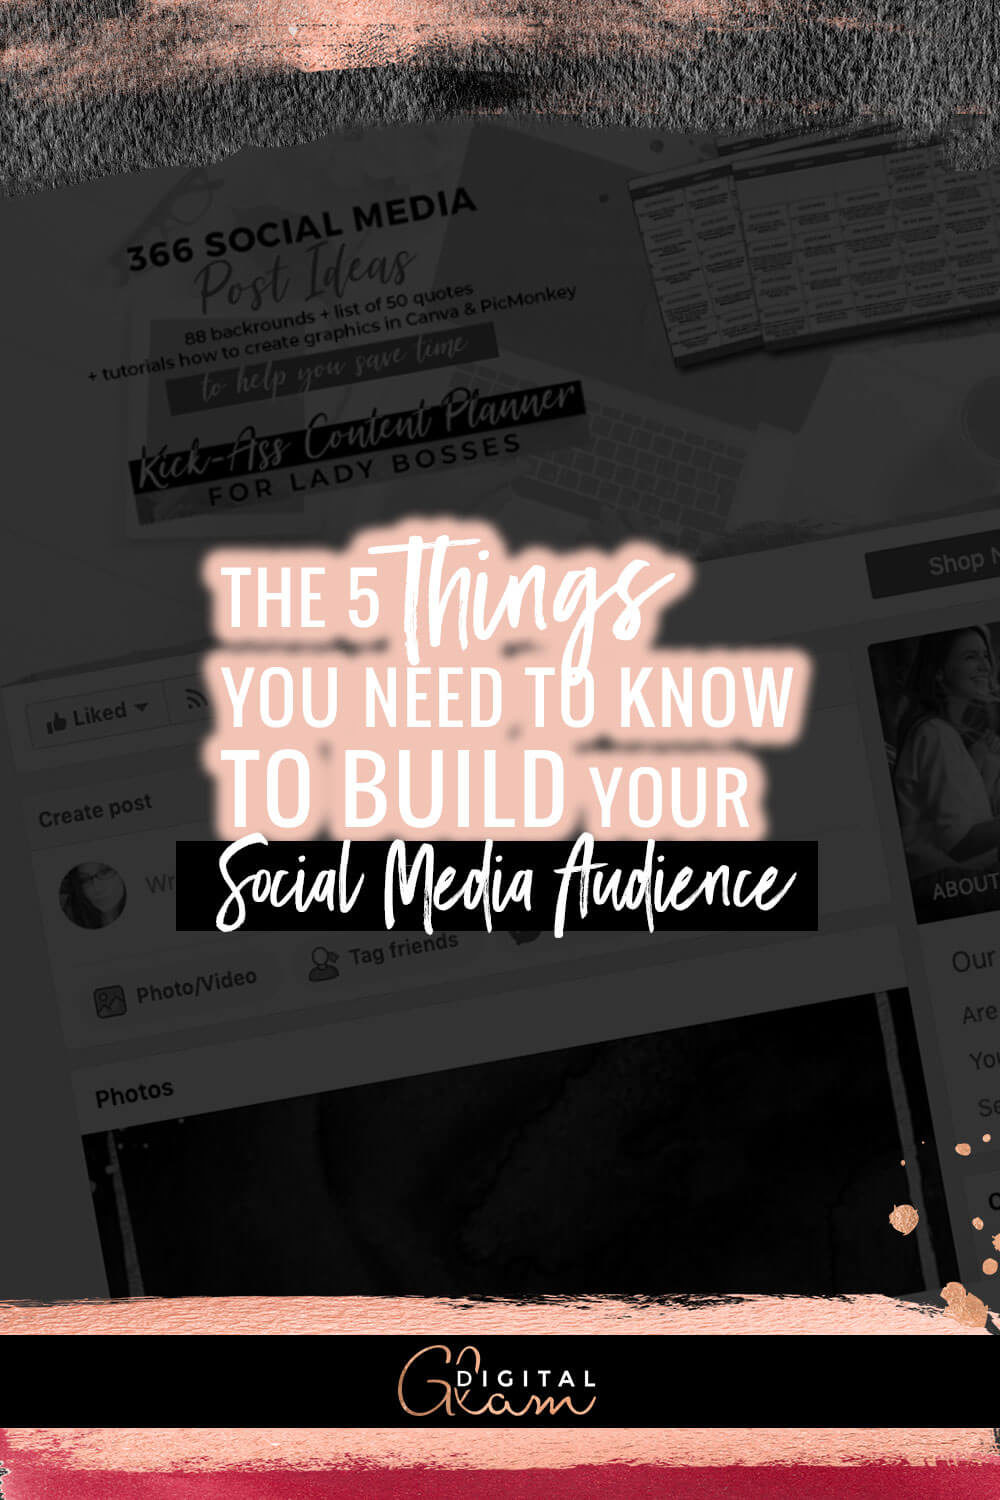 The 5 Things You Need to Know to Build Your Social Media Audience